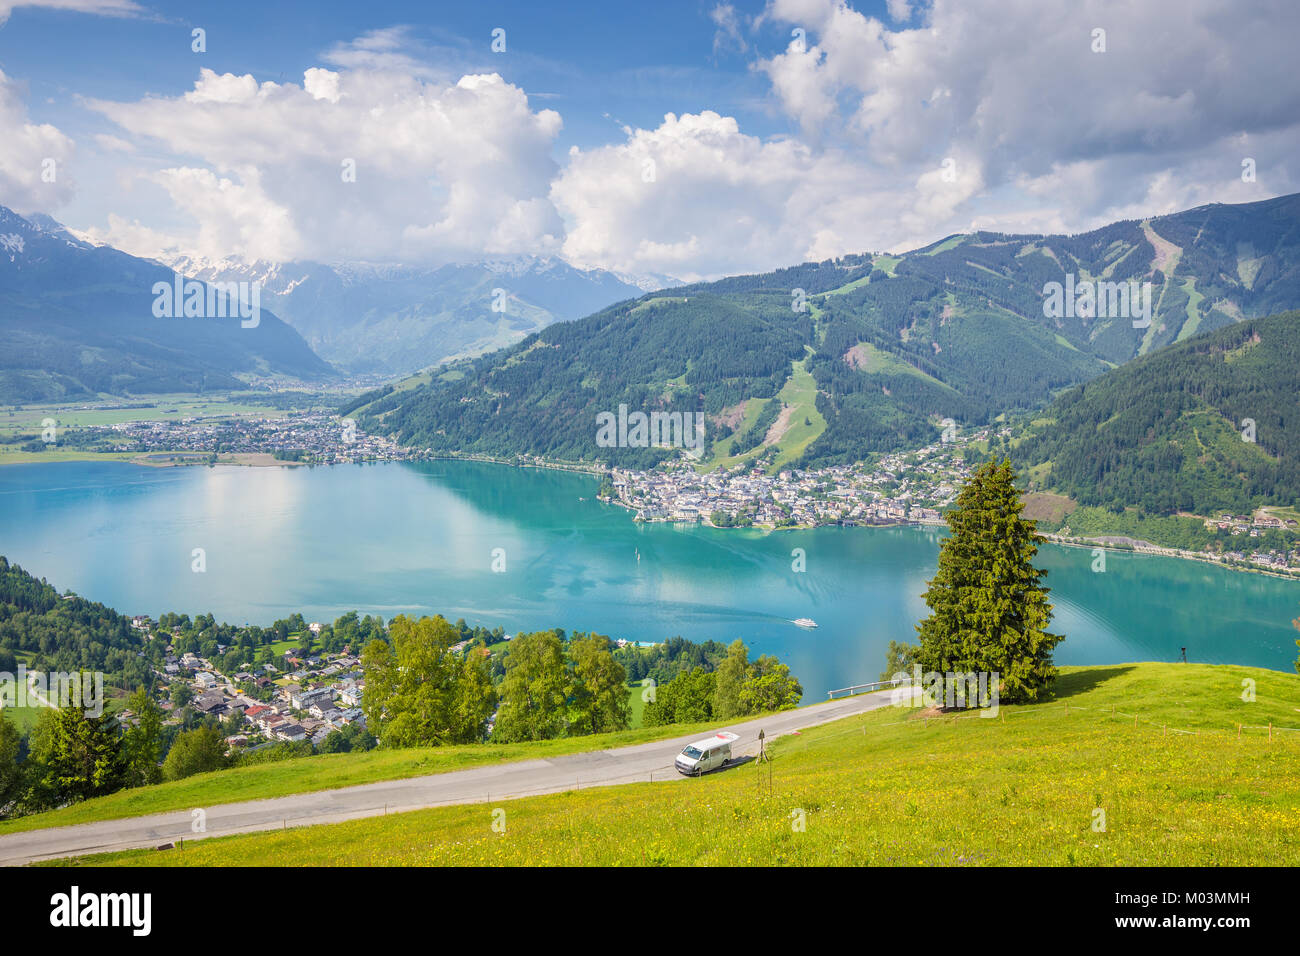 Panoramic View Of Beautiful Scenery In The Alps With Clear Lake And Green Meadows Full Blooming Flowers On A Sunny Day Blue Sky Clouds